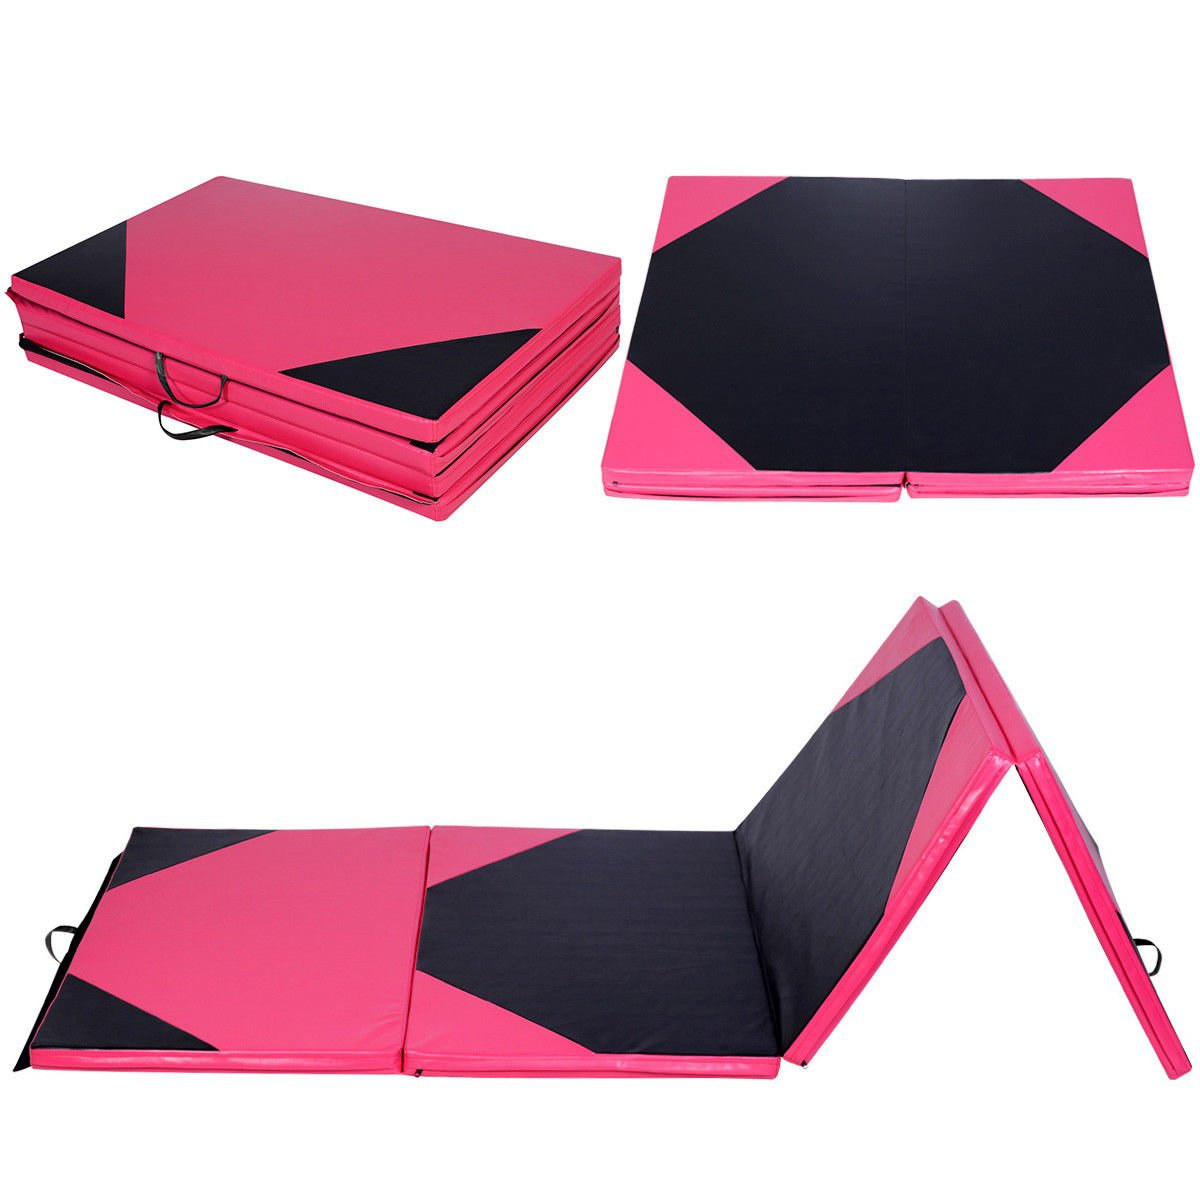 COSTWAY Gymnastics Mat Thick Folding Panel Gym Fitness Exercise Pink & Black